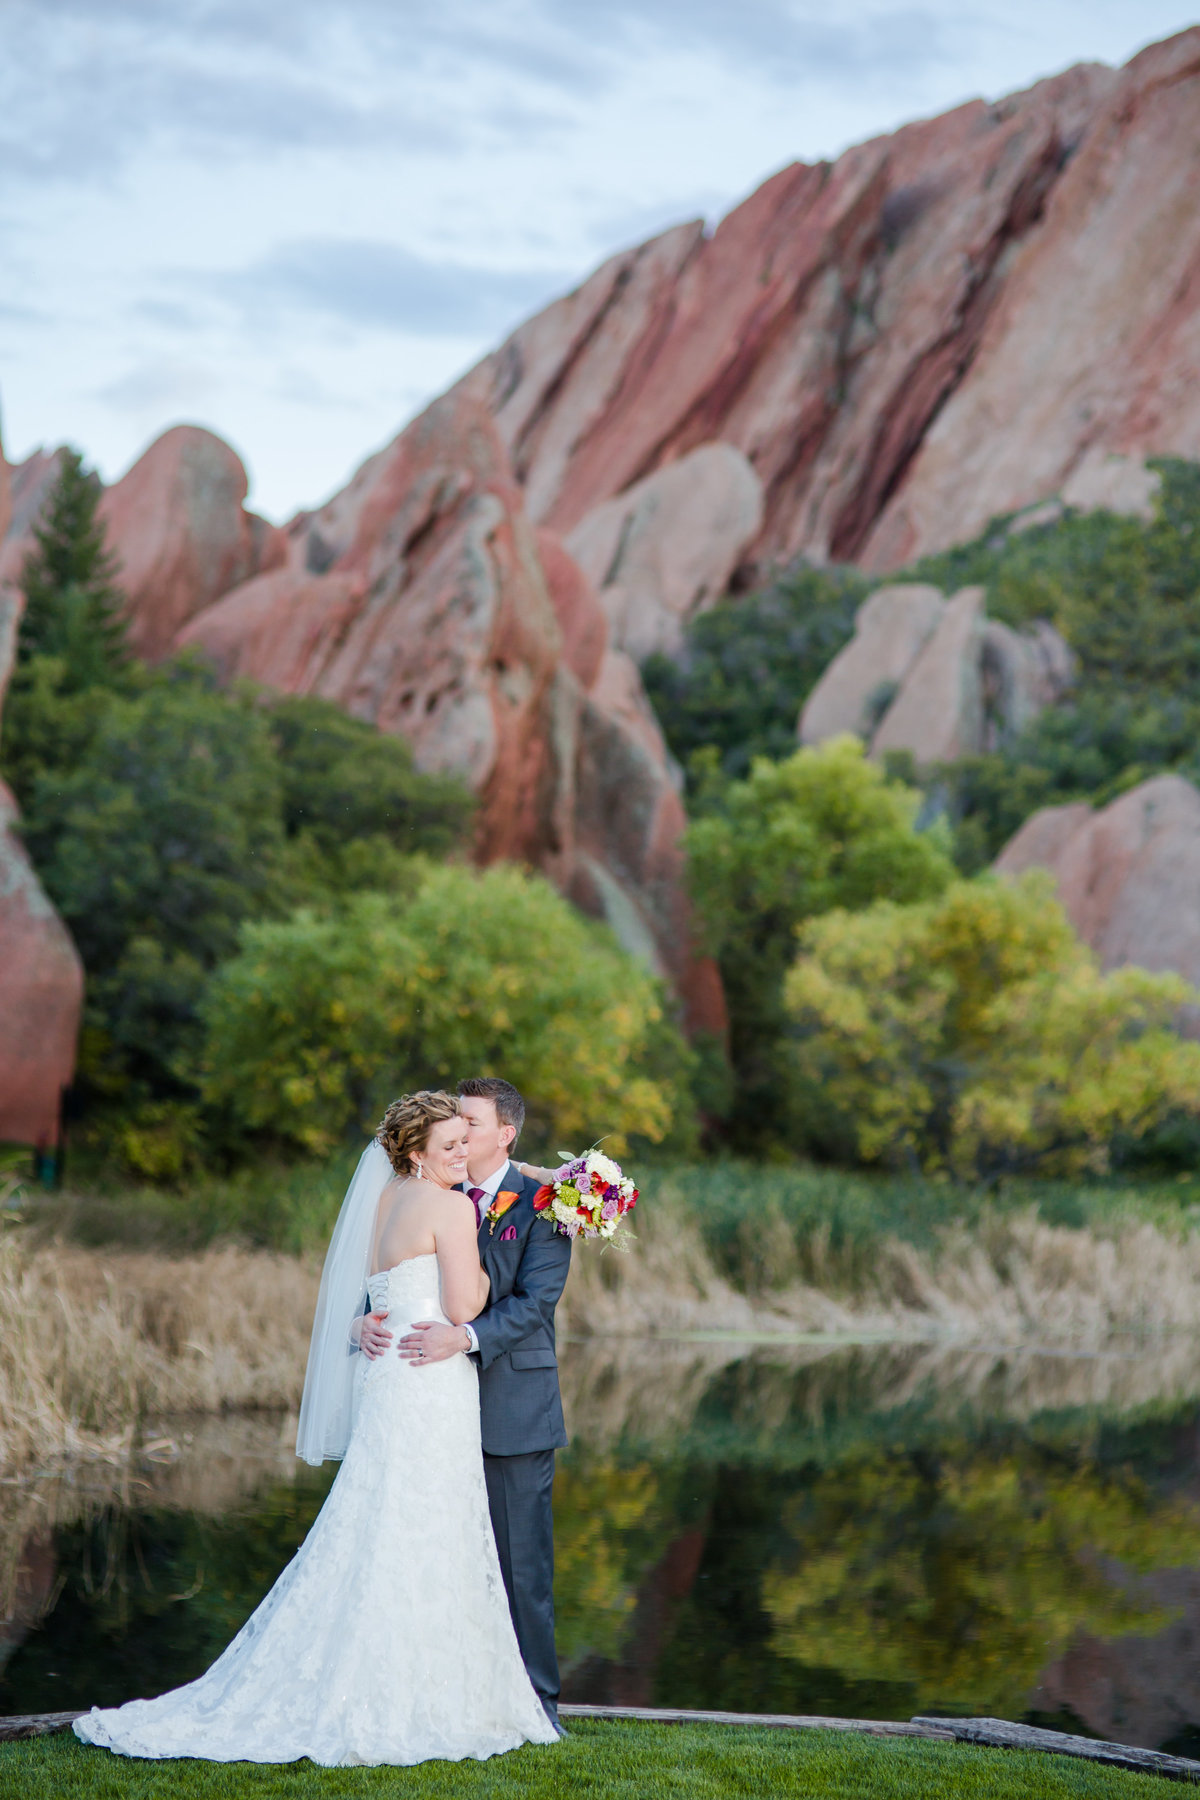 Bride and groom with red rocks of Arrowhead